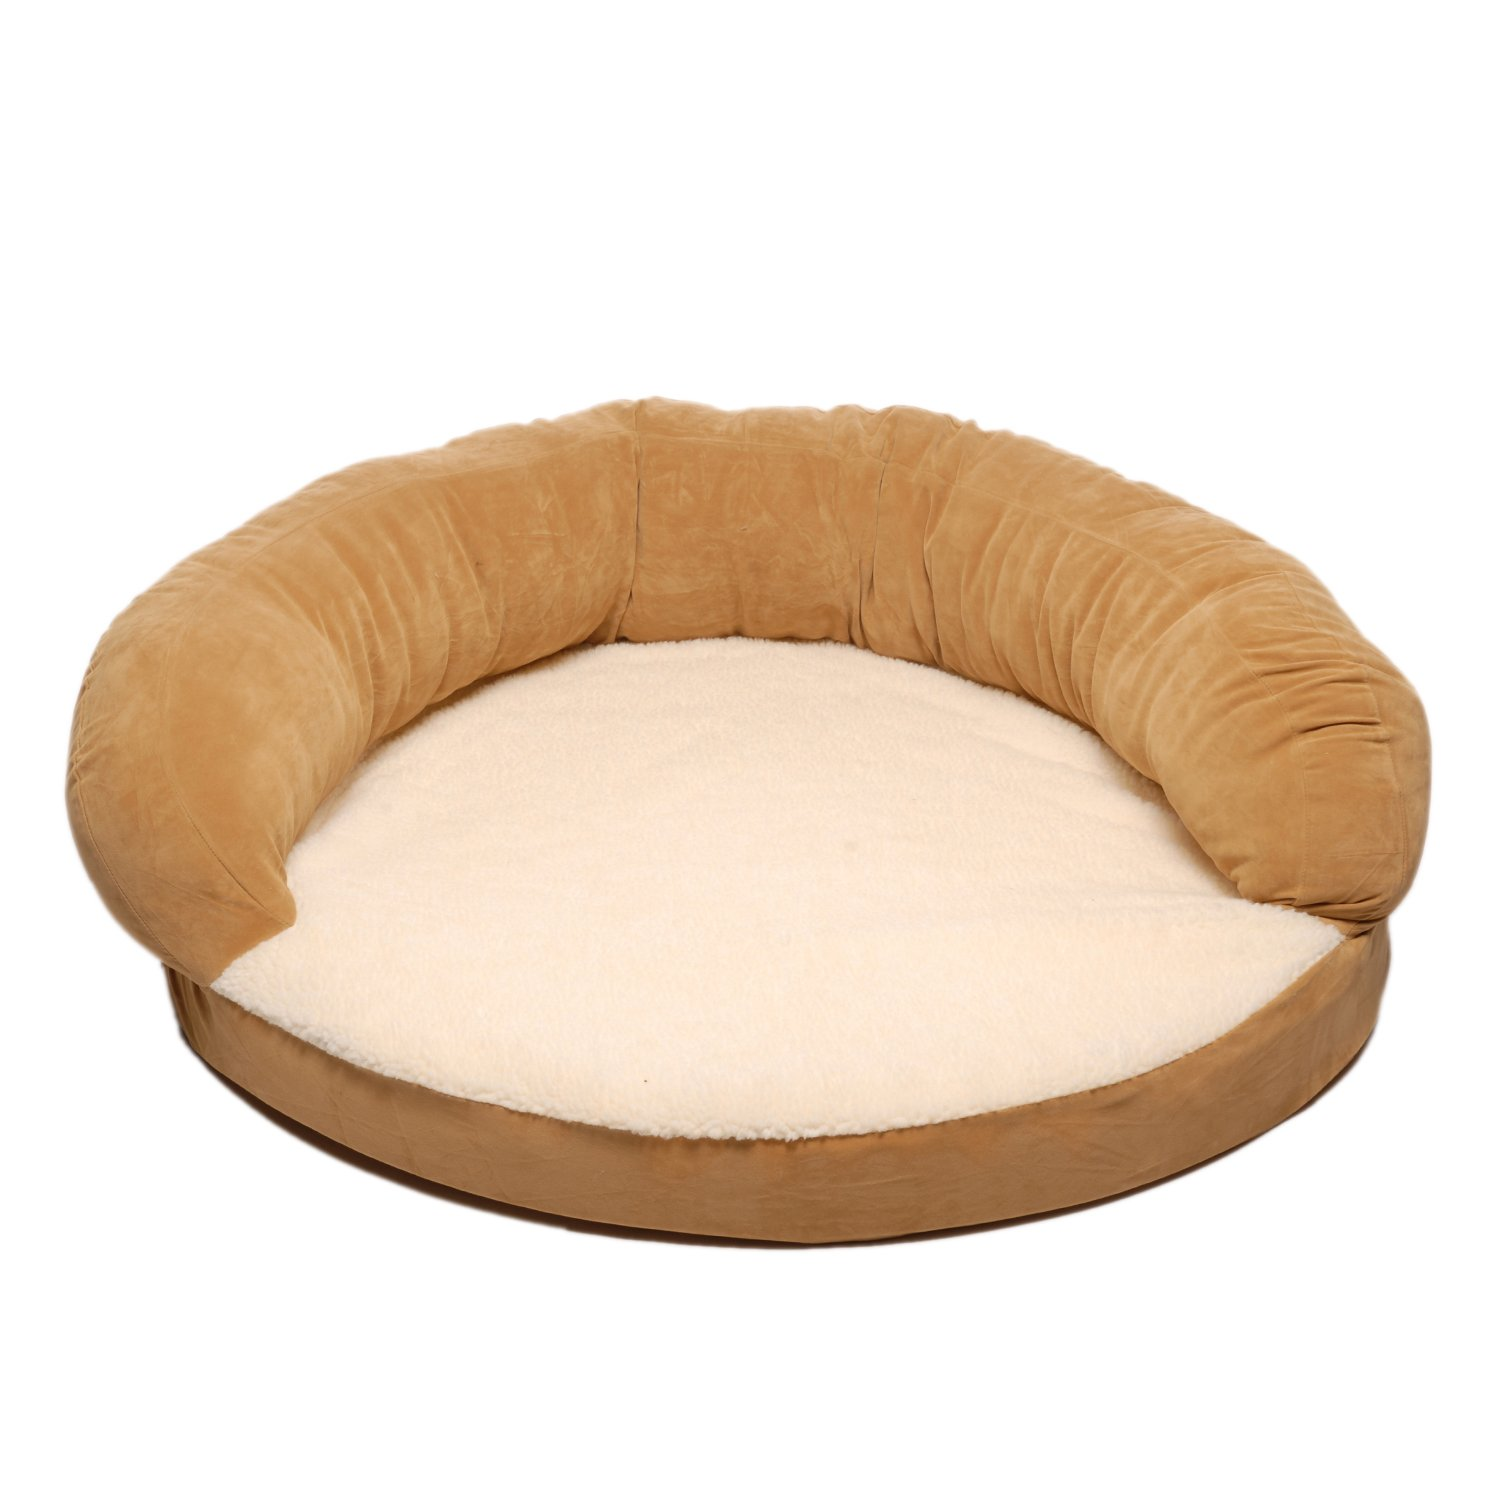 CPC Ortho 42-Inch Sleeper Bolster Bed, Caramel